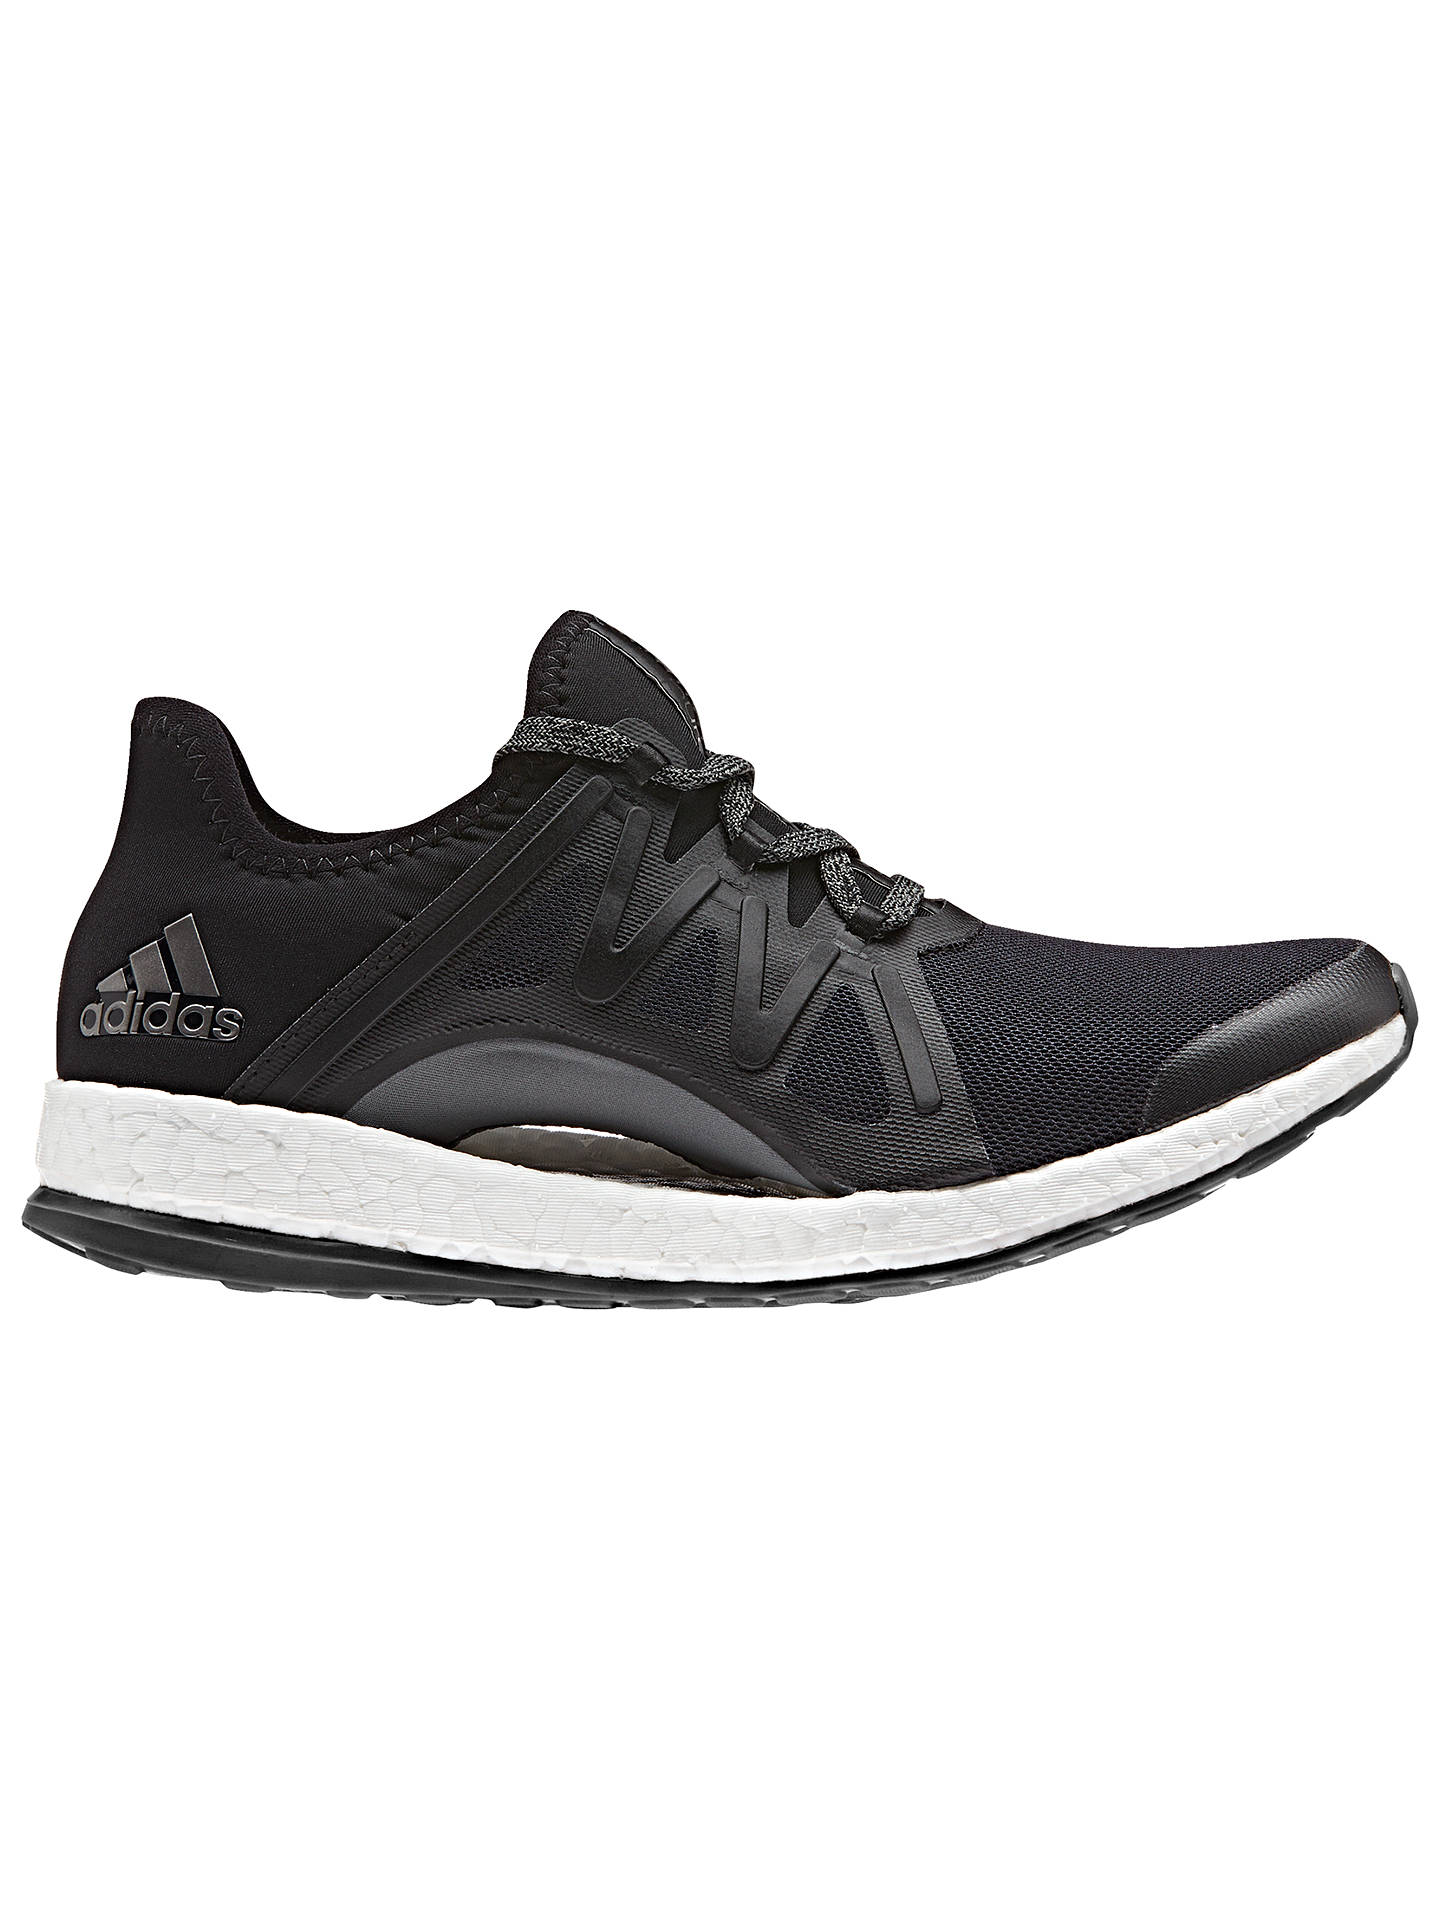 Adidas Pure Boost XPose Women s Running Shoes at John Lewis   Partners e48c132279